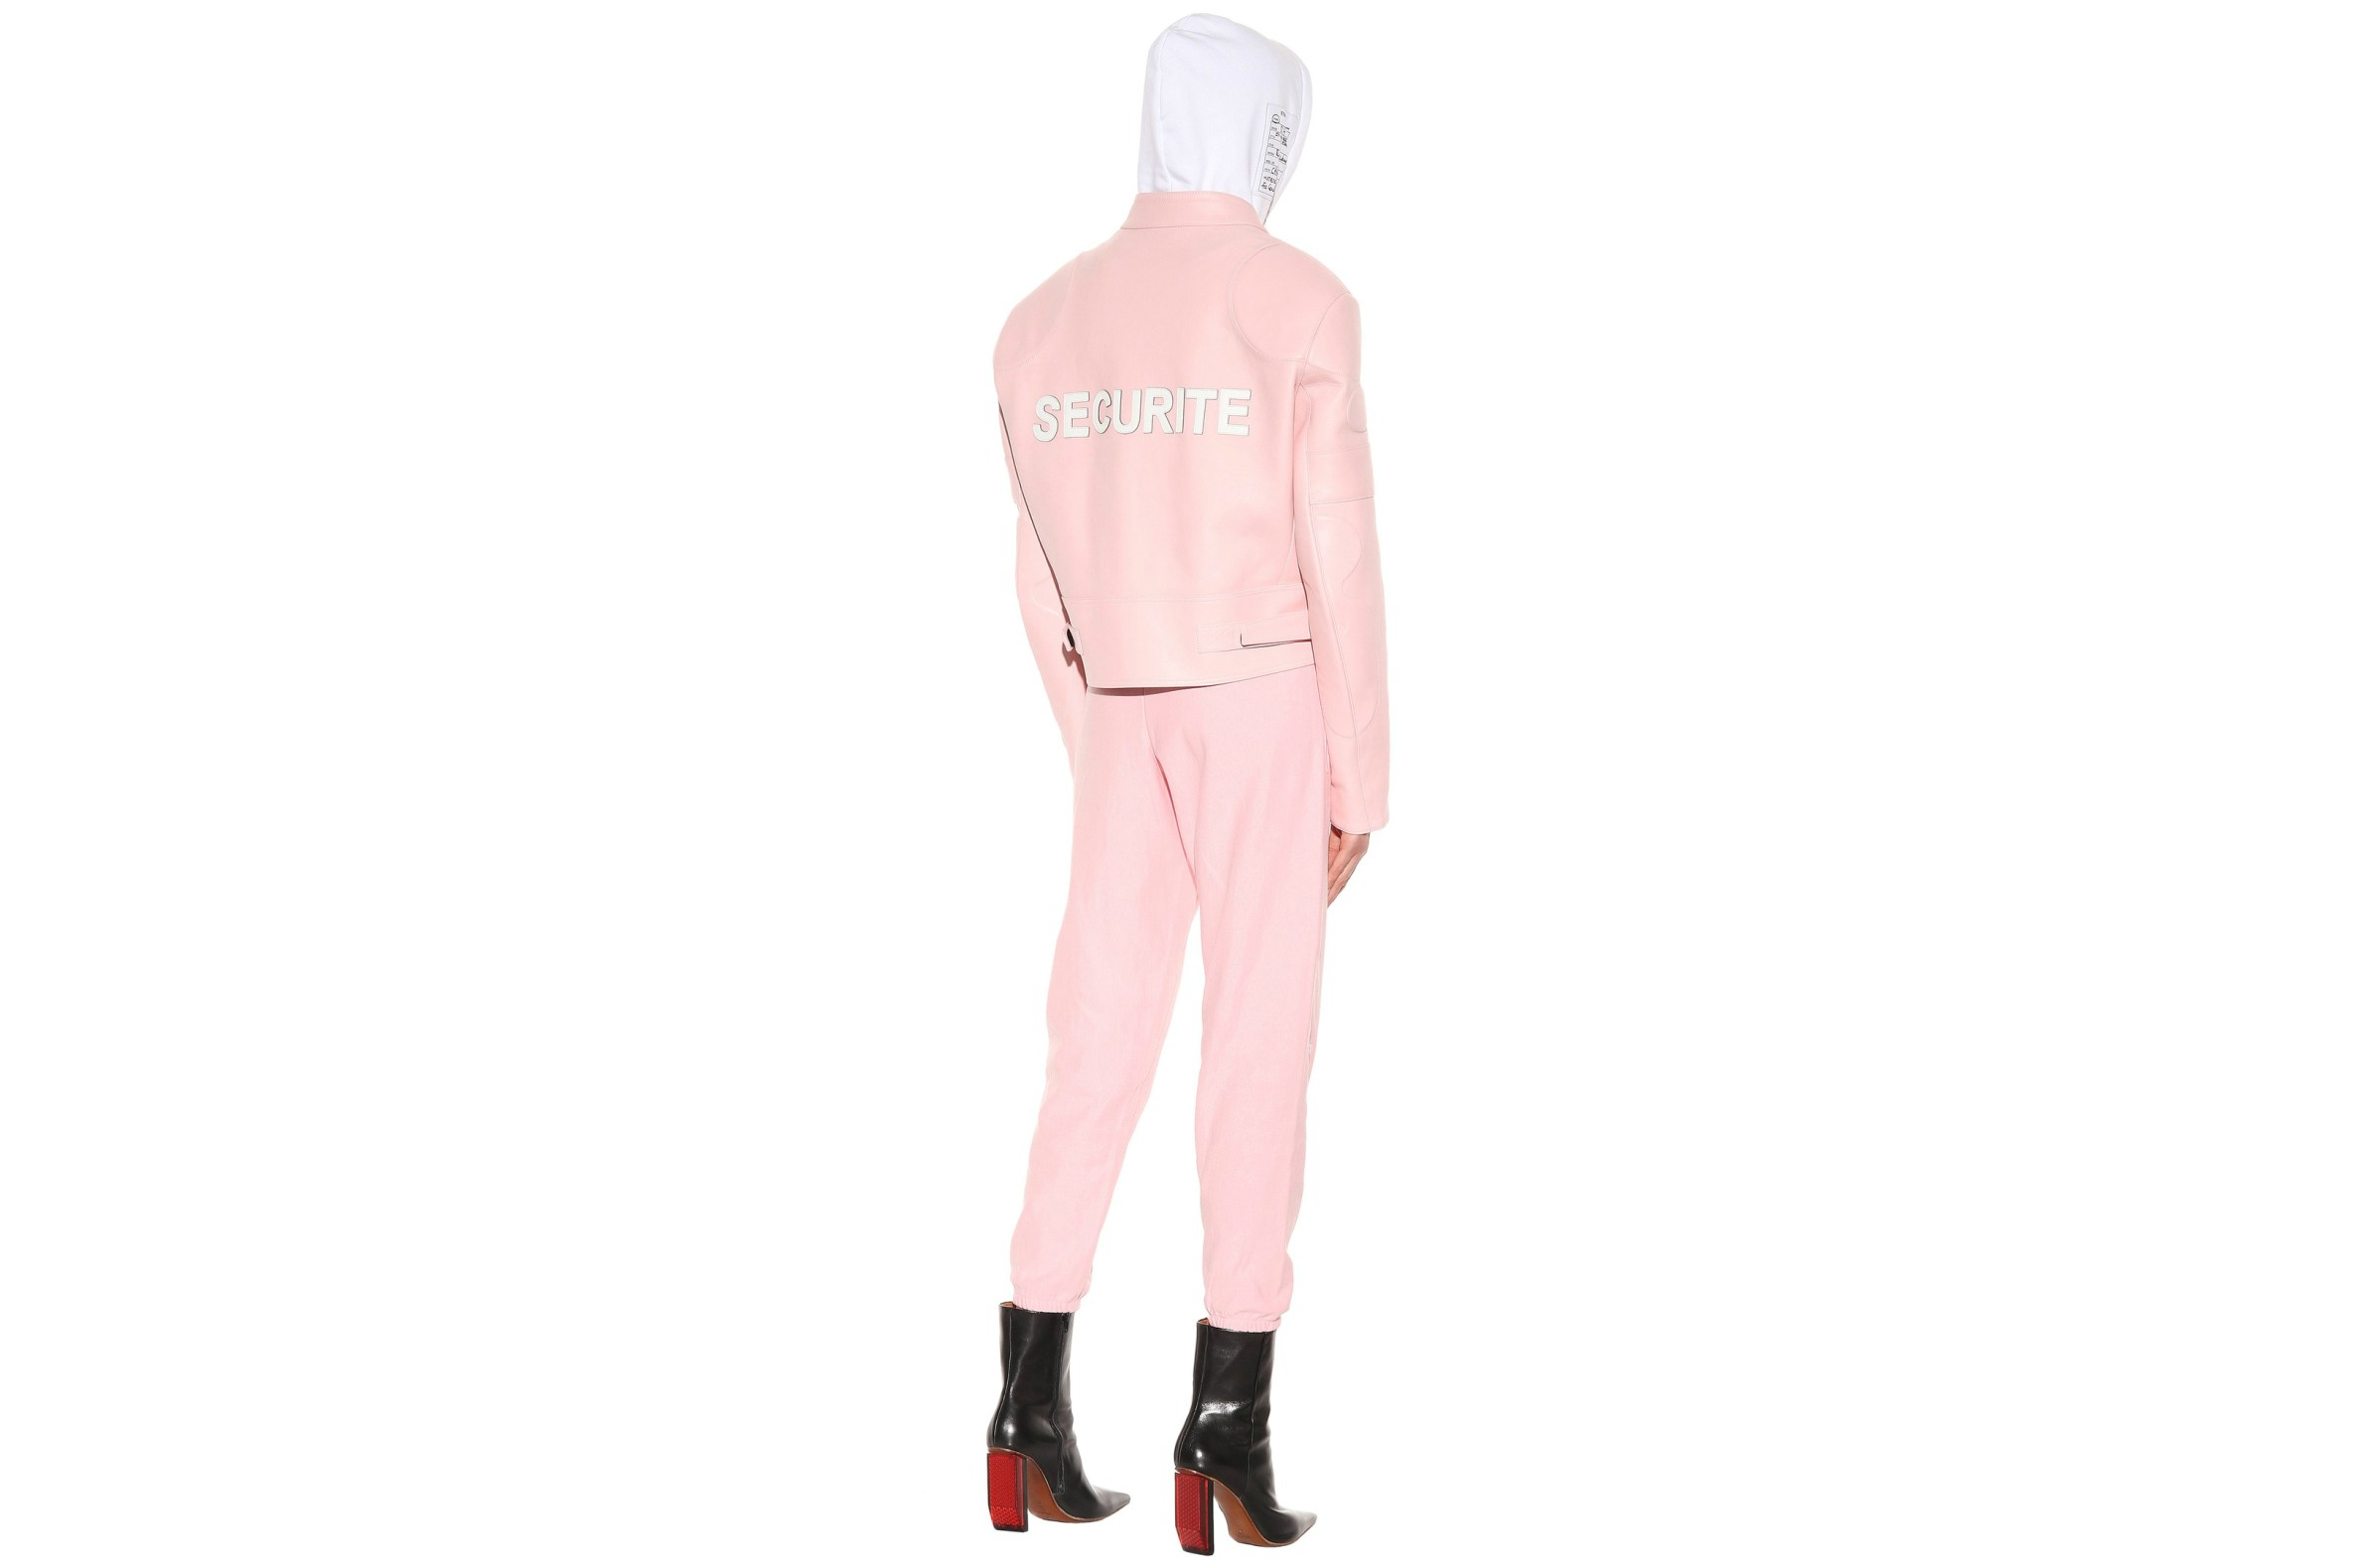 vetements-securite-pink-leather-jacket-1